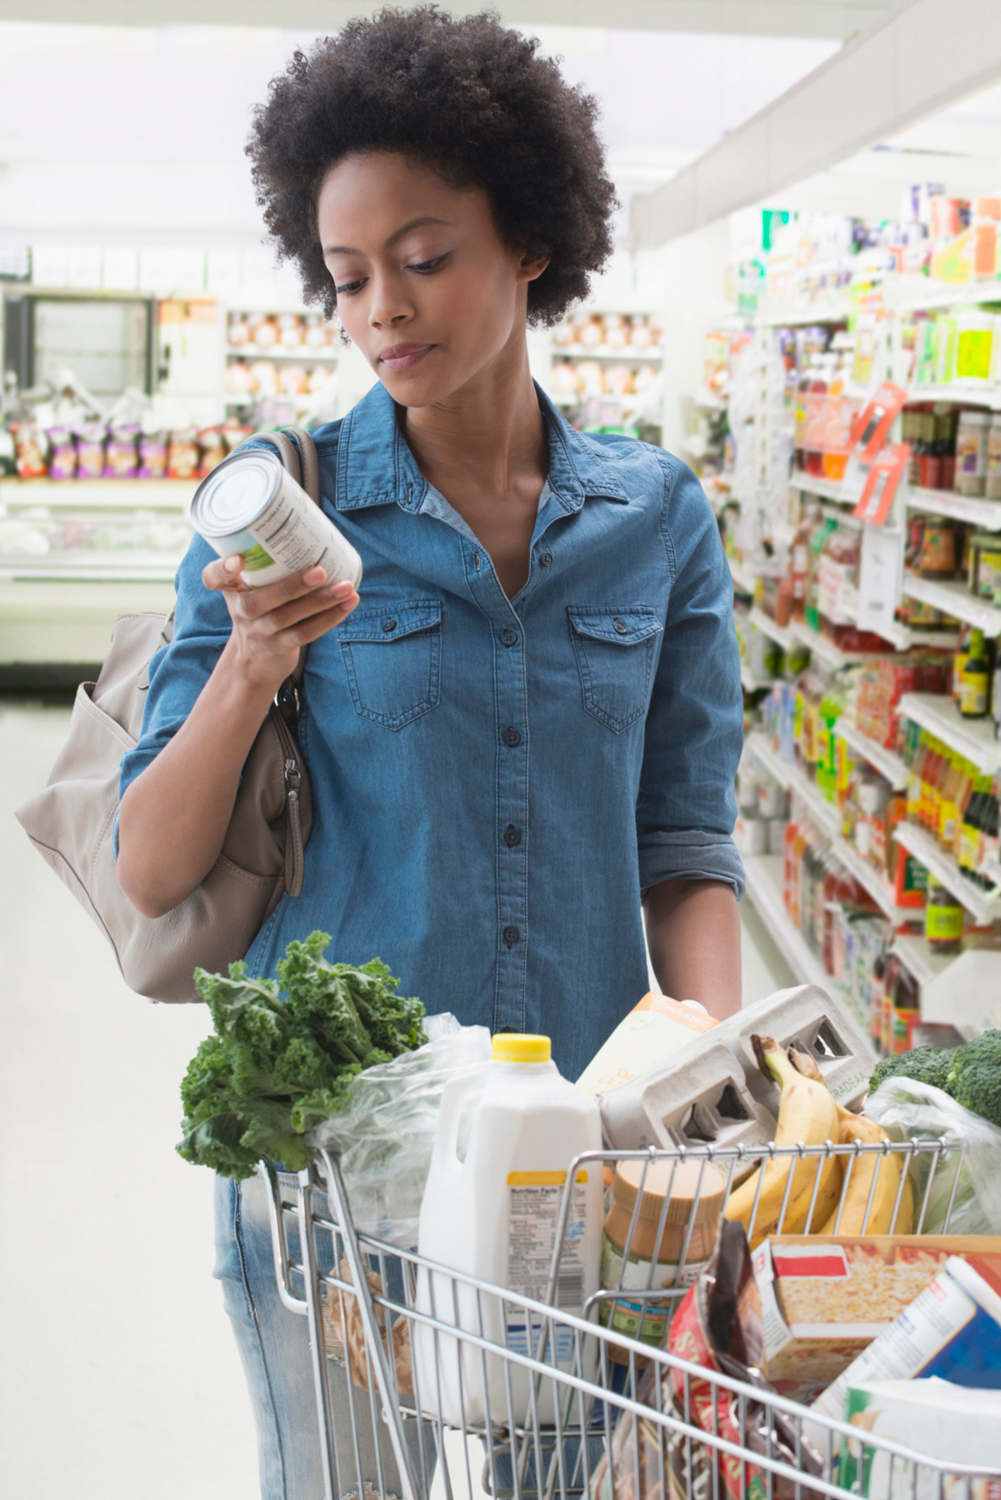 Woman looking at nutrition label